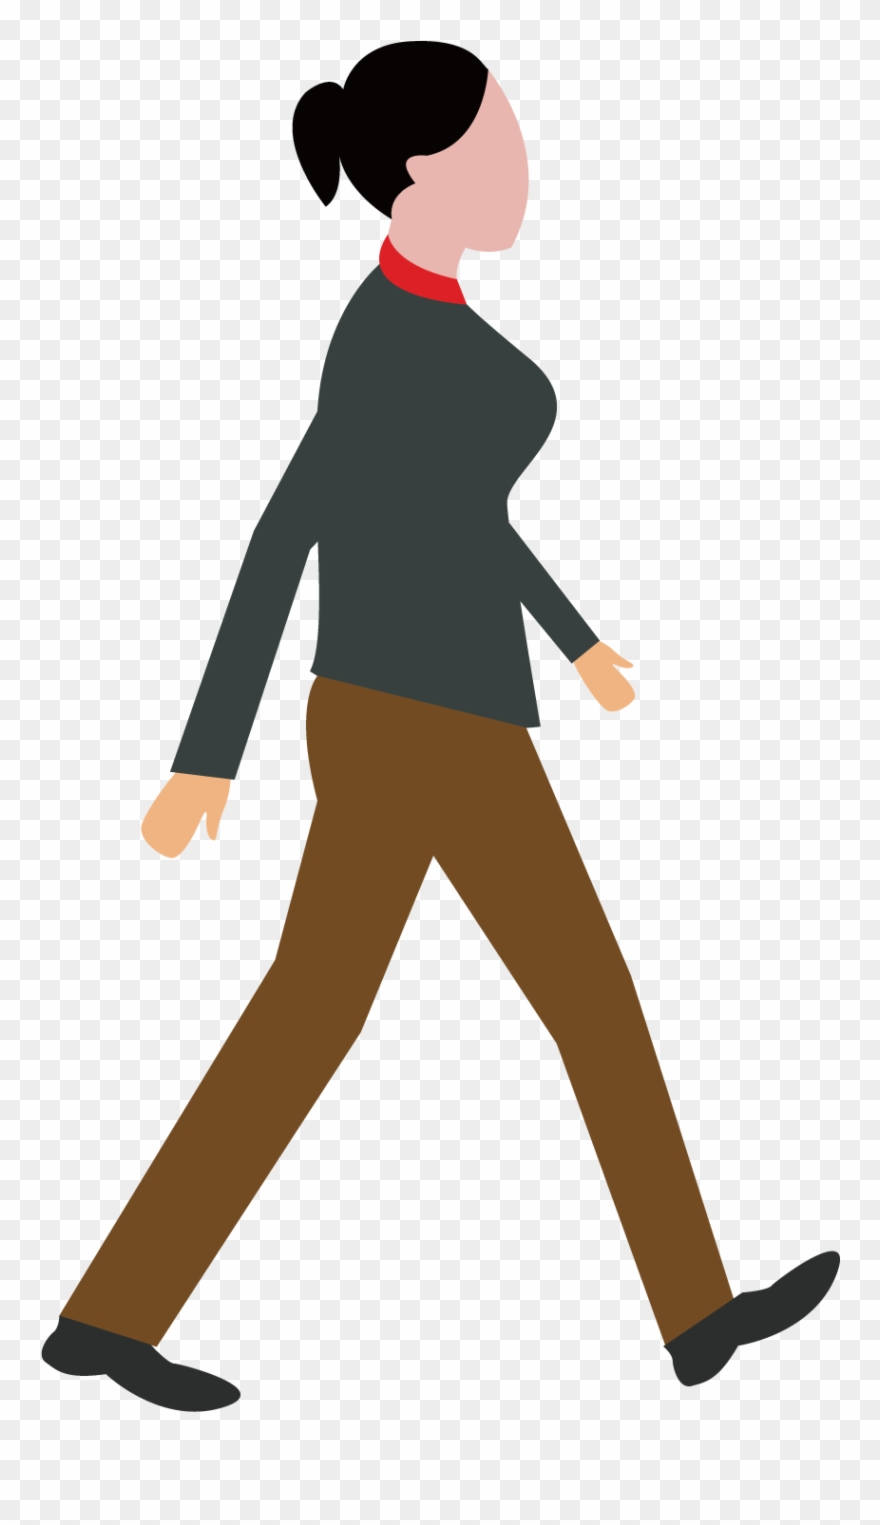 Walking Cartoon Png.